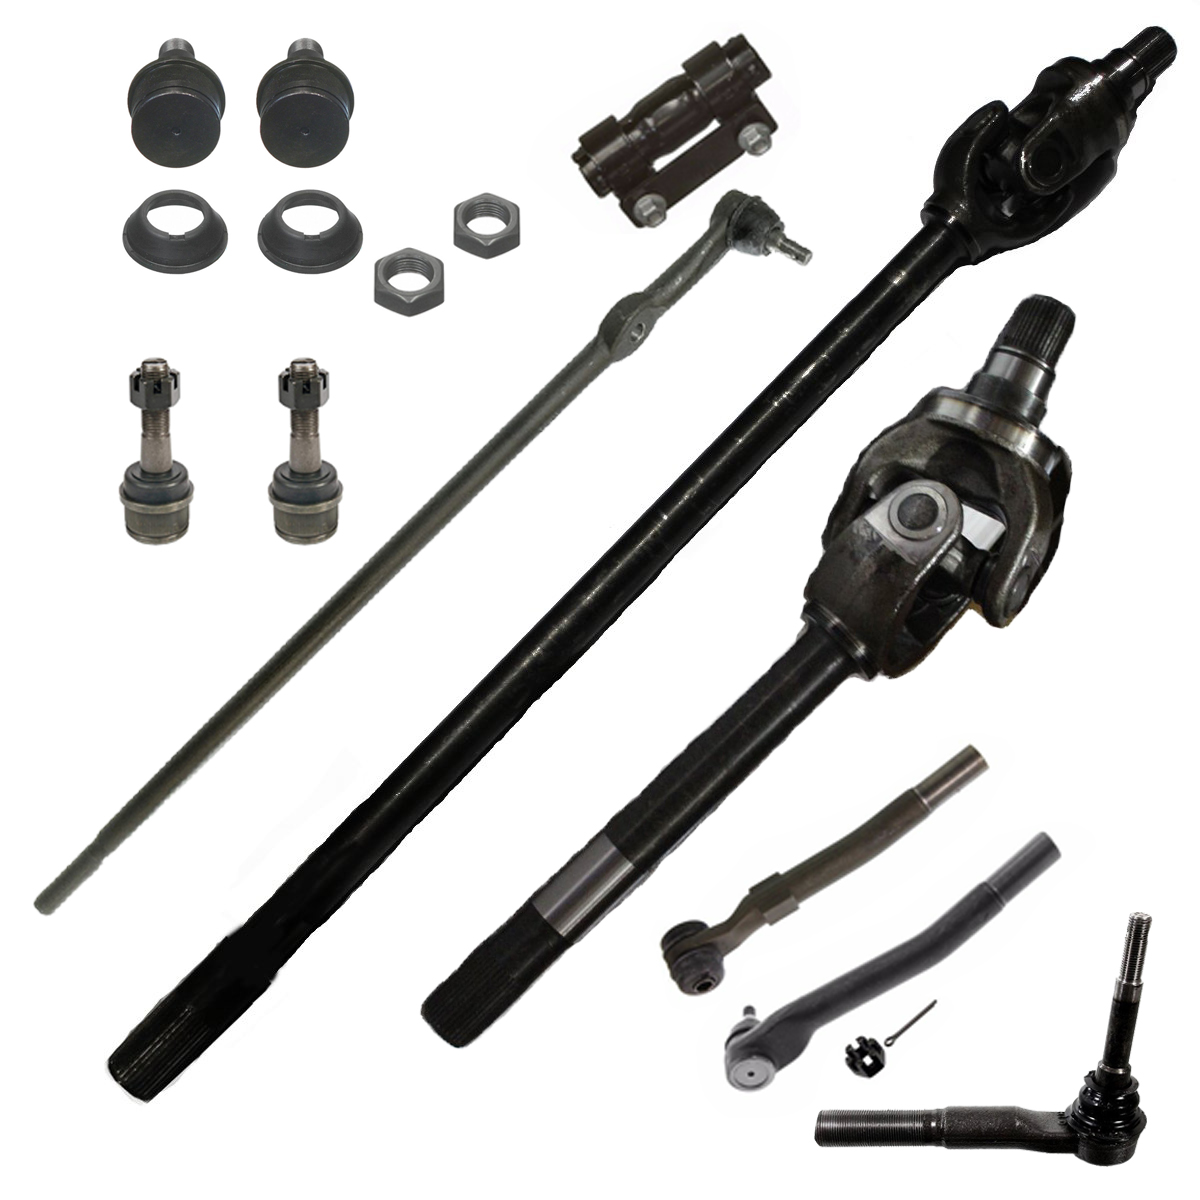 Front CV Axle Shaft + Suspension Kit for 4WD Dana 60 Axle